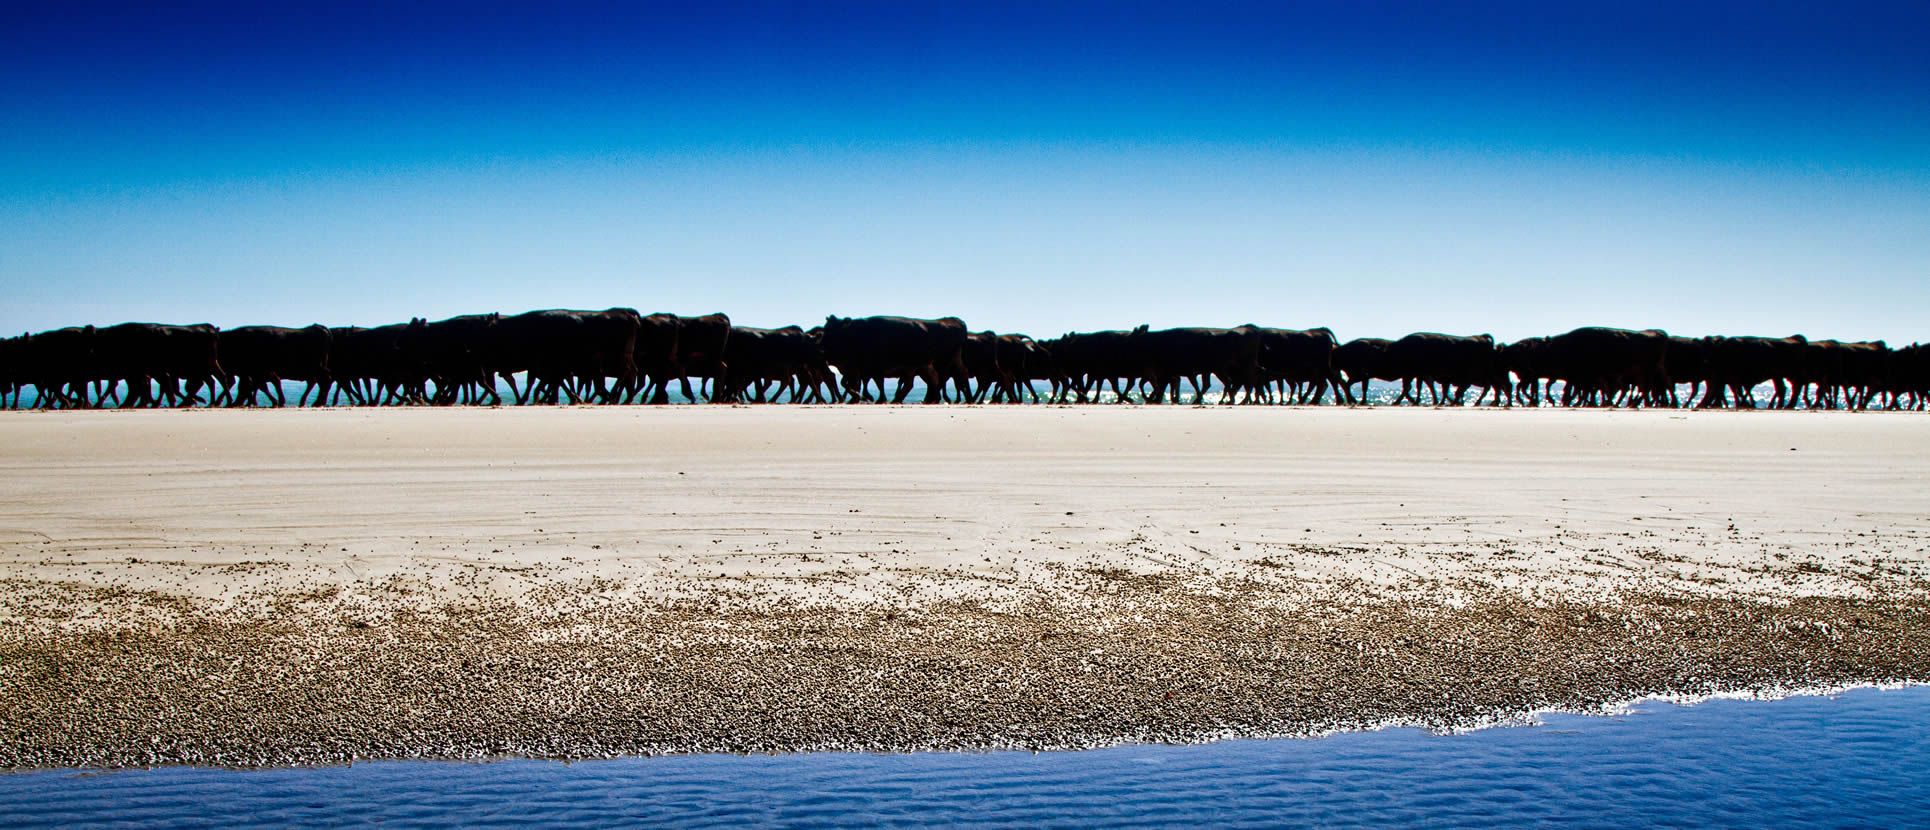 Cattle Muster - Robbins Island, Australia